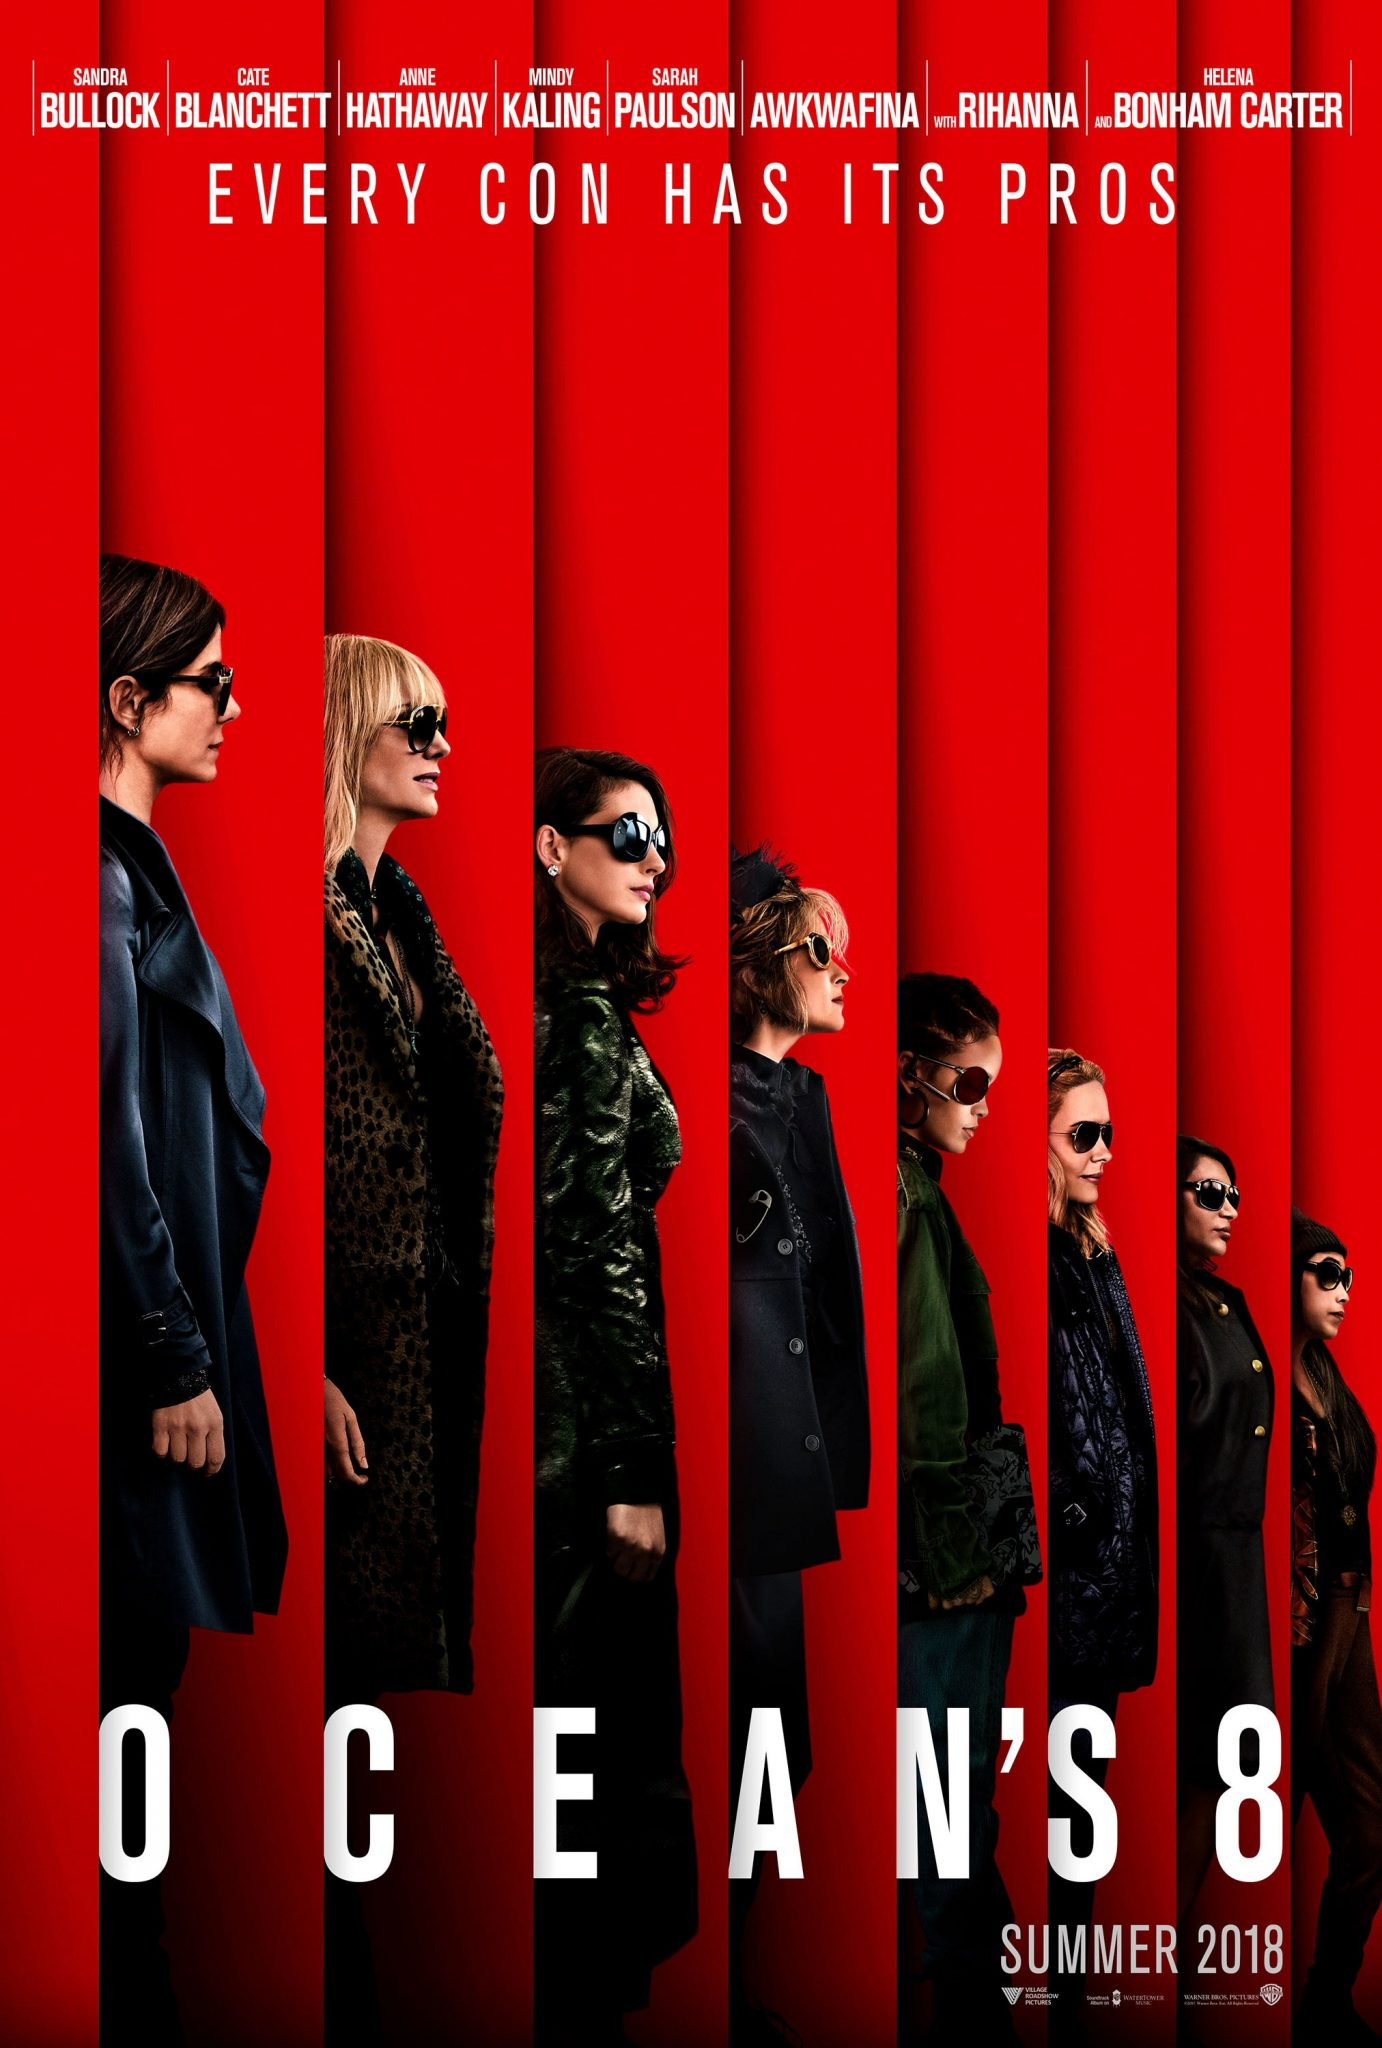 Oceans 8 Movie Screening